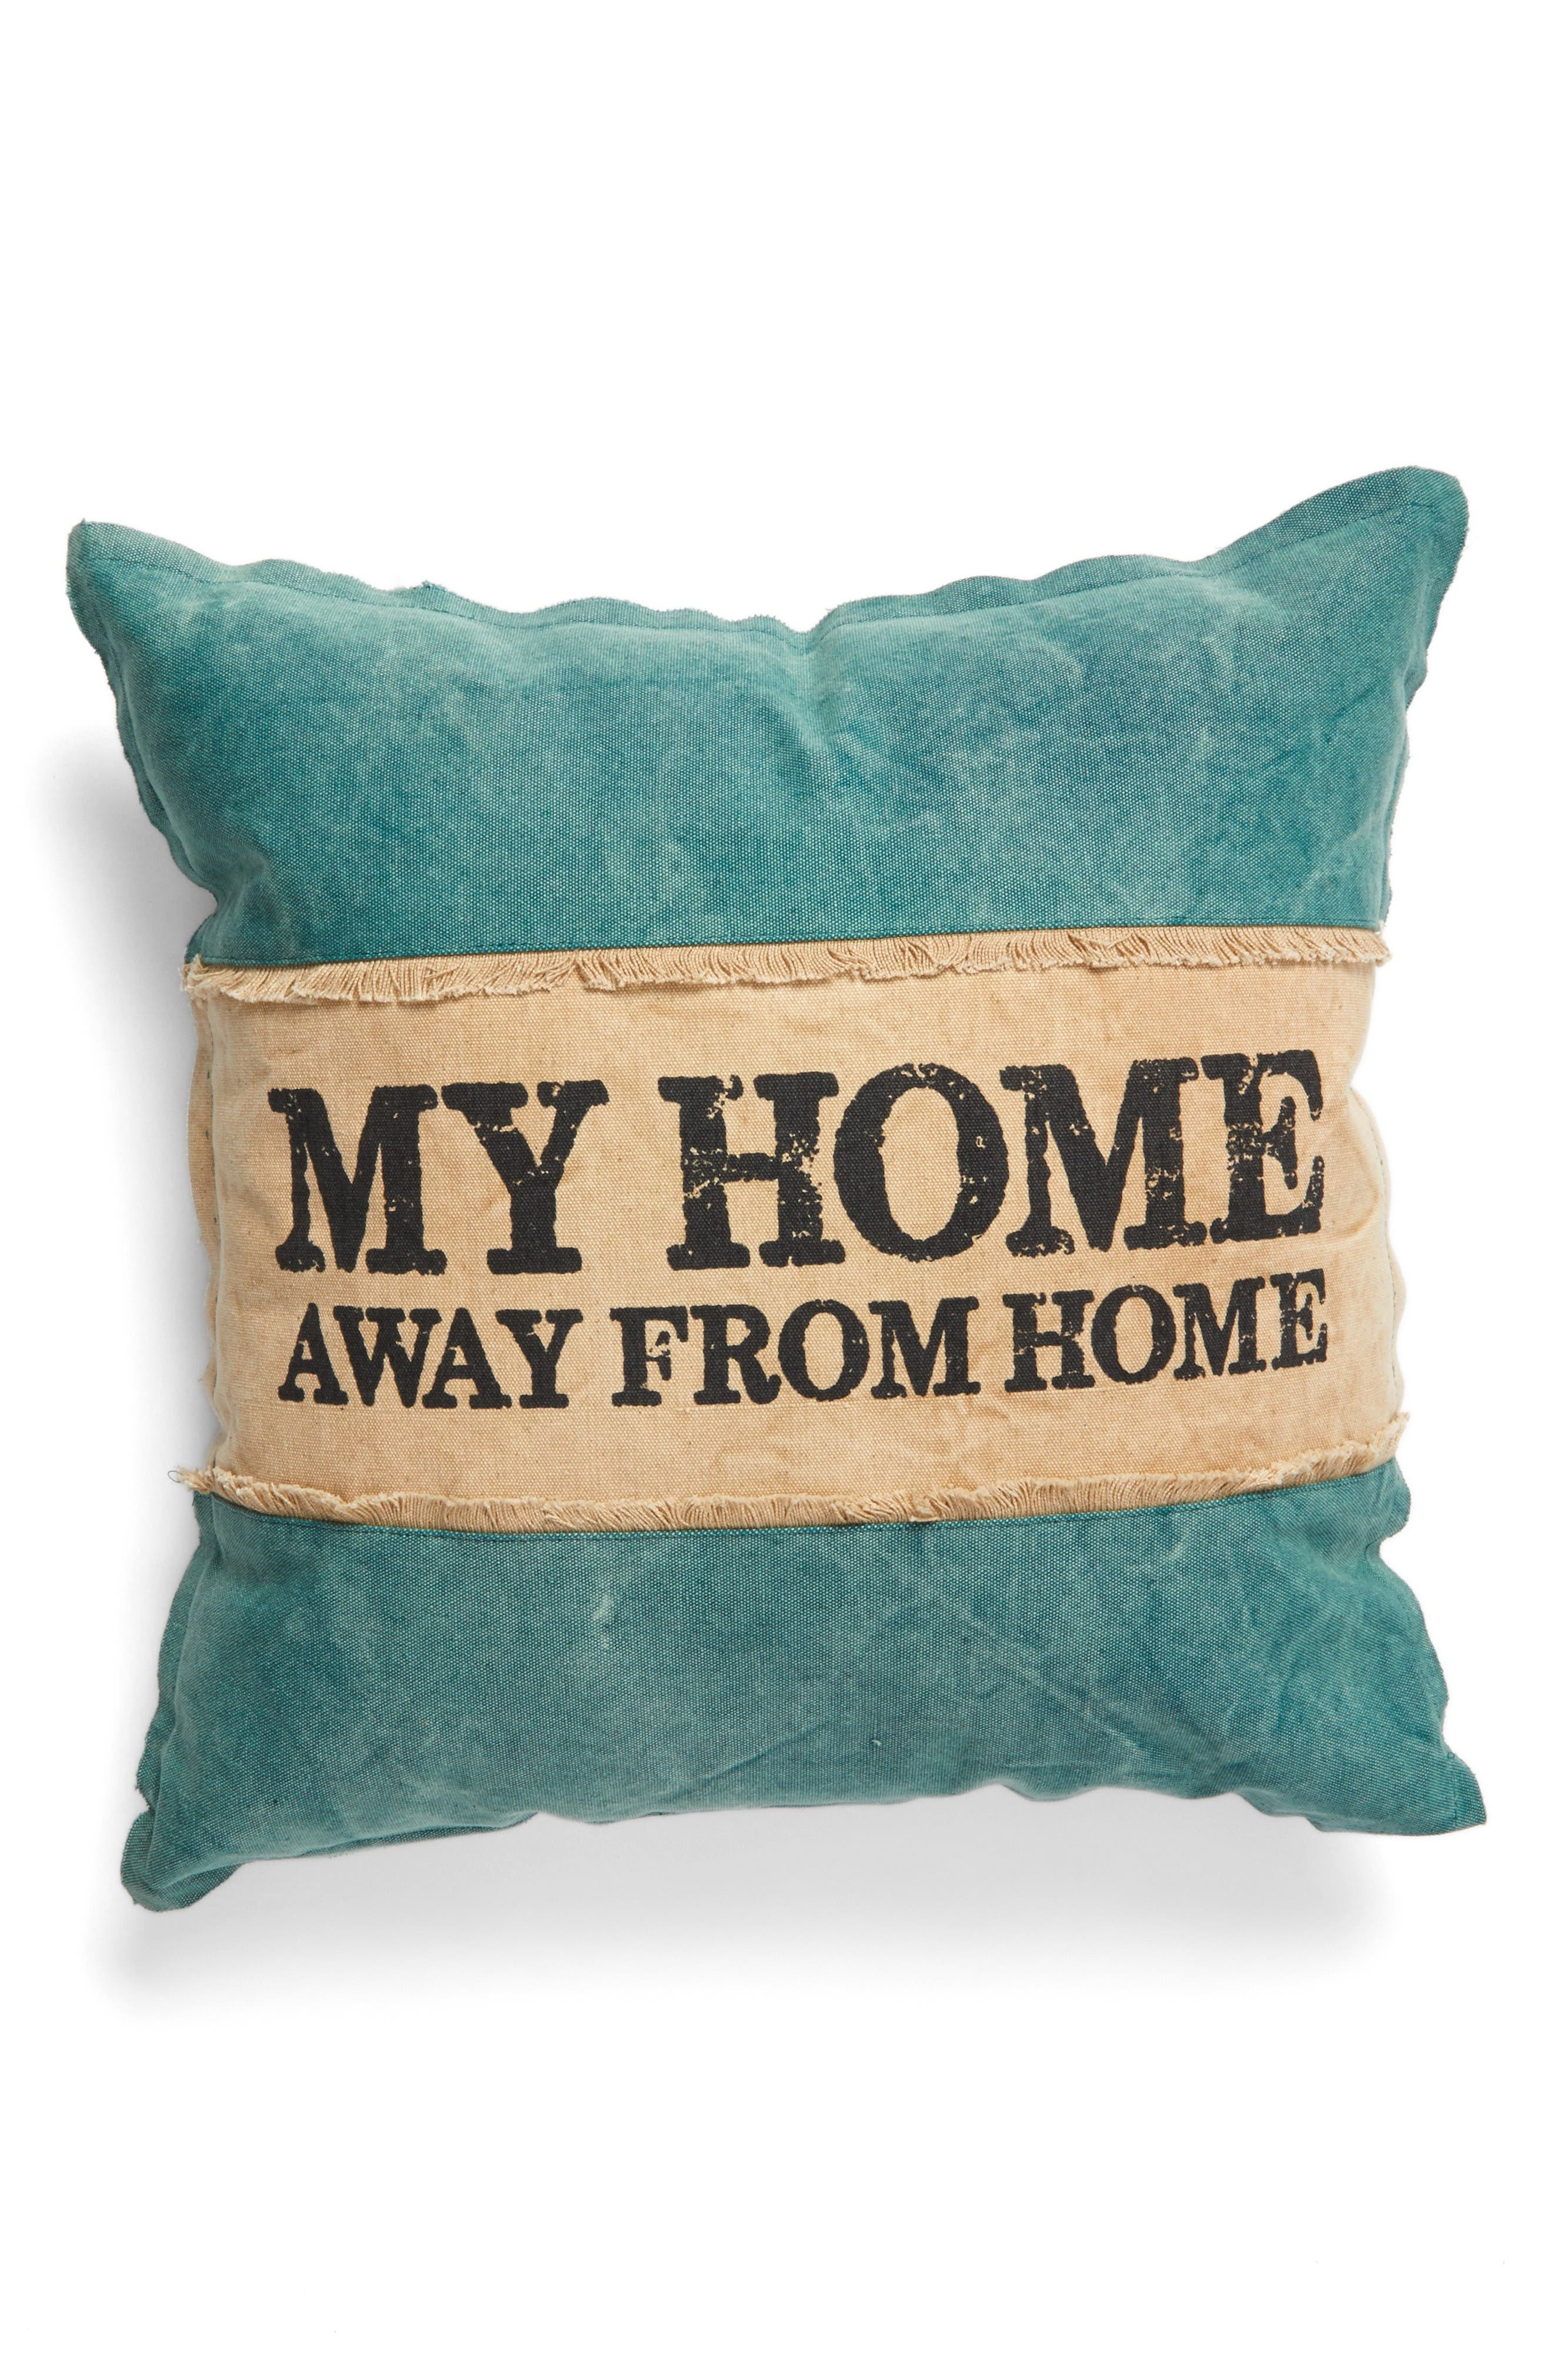 Primitives by Kathy Home Away From Home Pillow